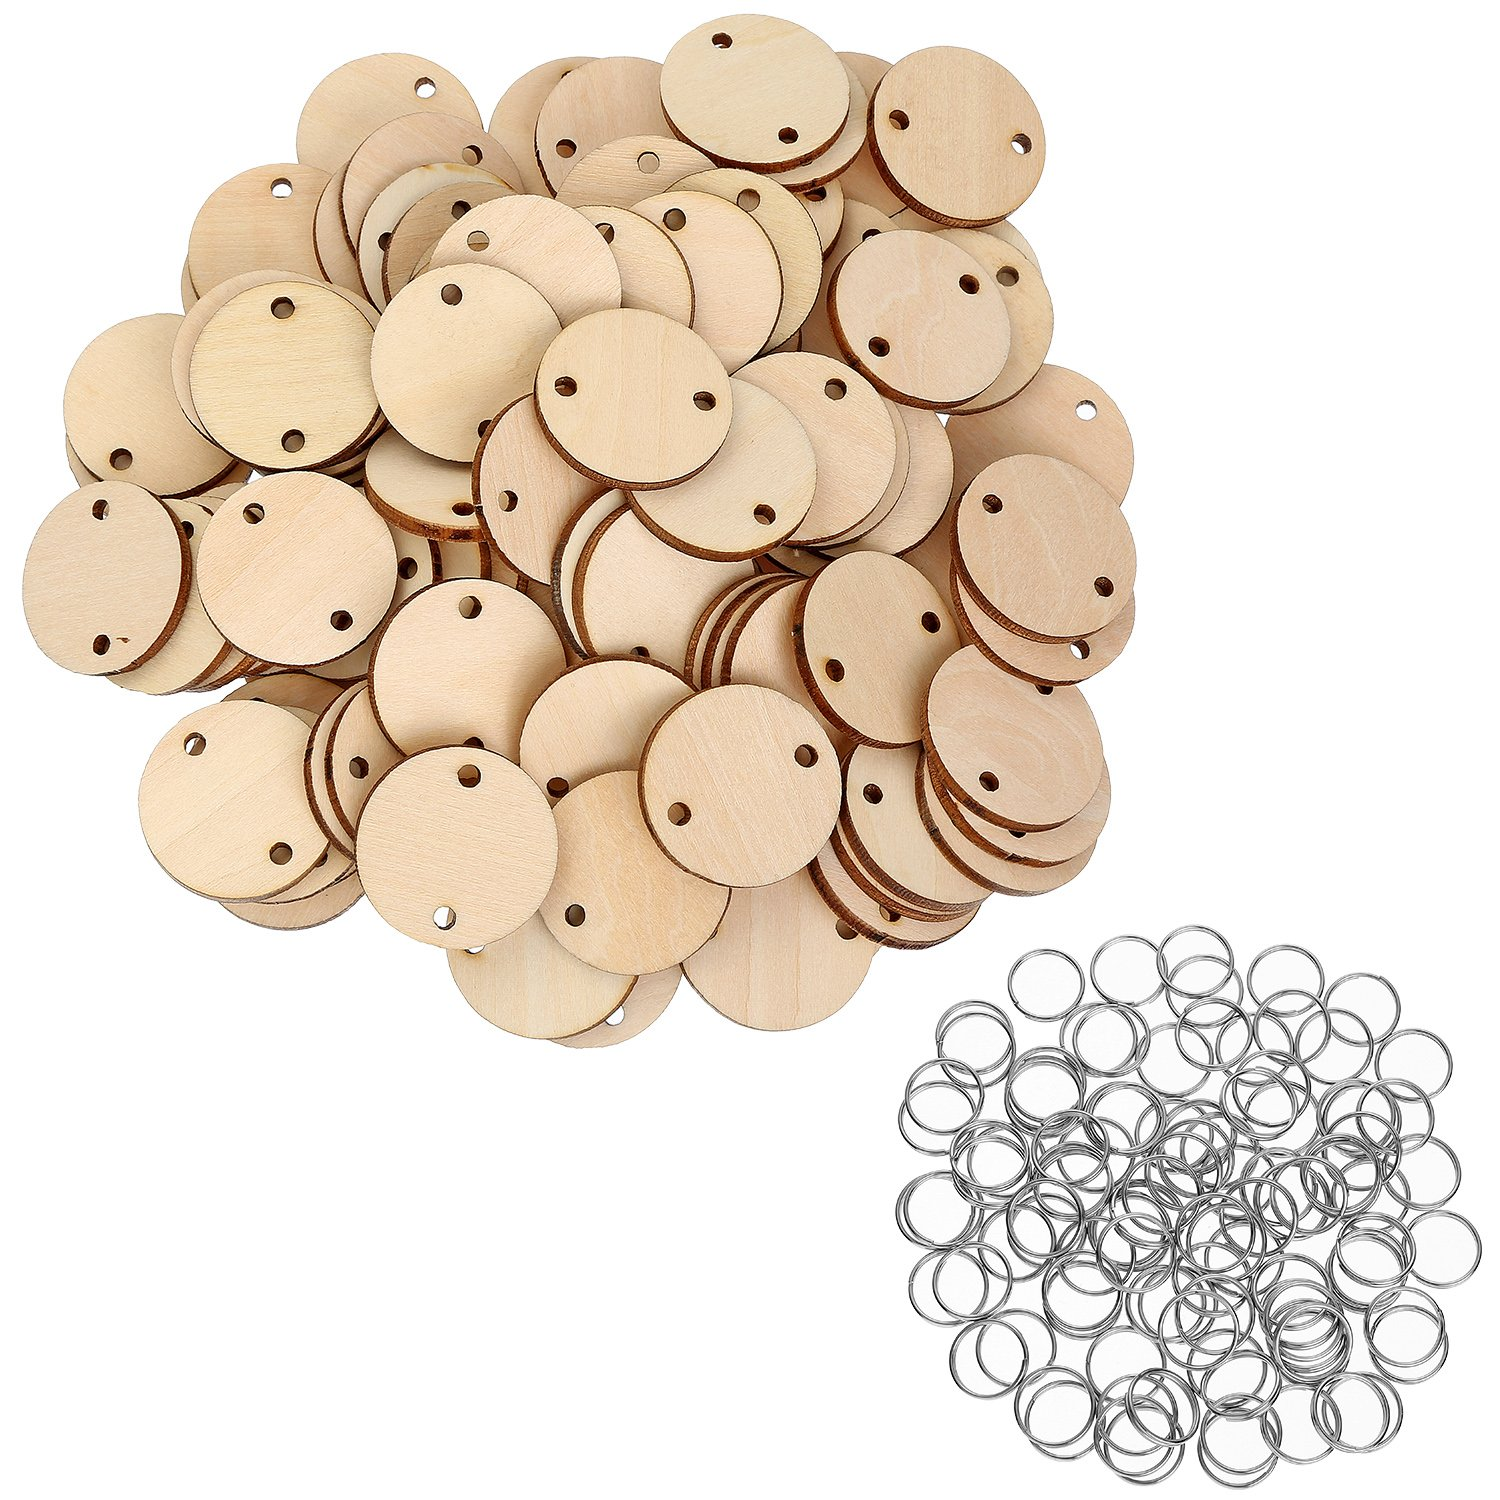 Bememo 100 Pieces Round Wooden Discs with Holes Birthday Board Tags and 100 Pieces 15 mm Rings for Arts and Crafts 3CM